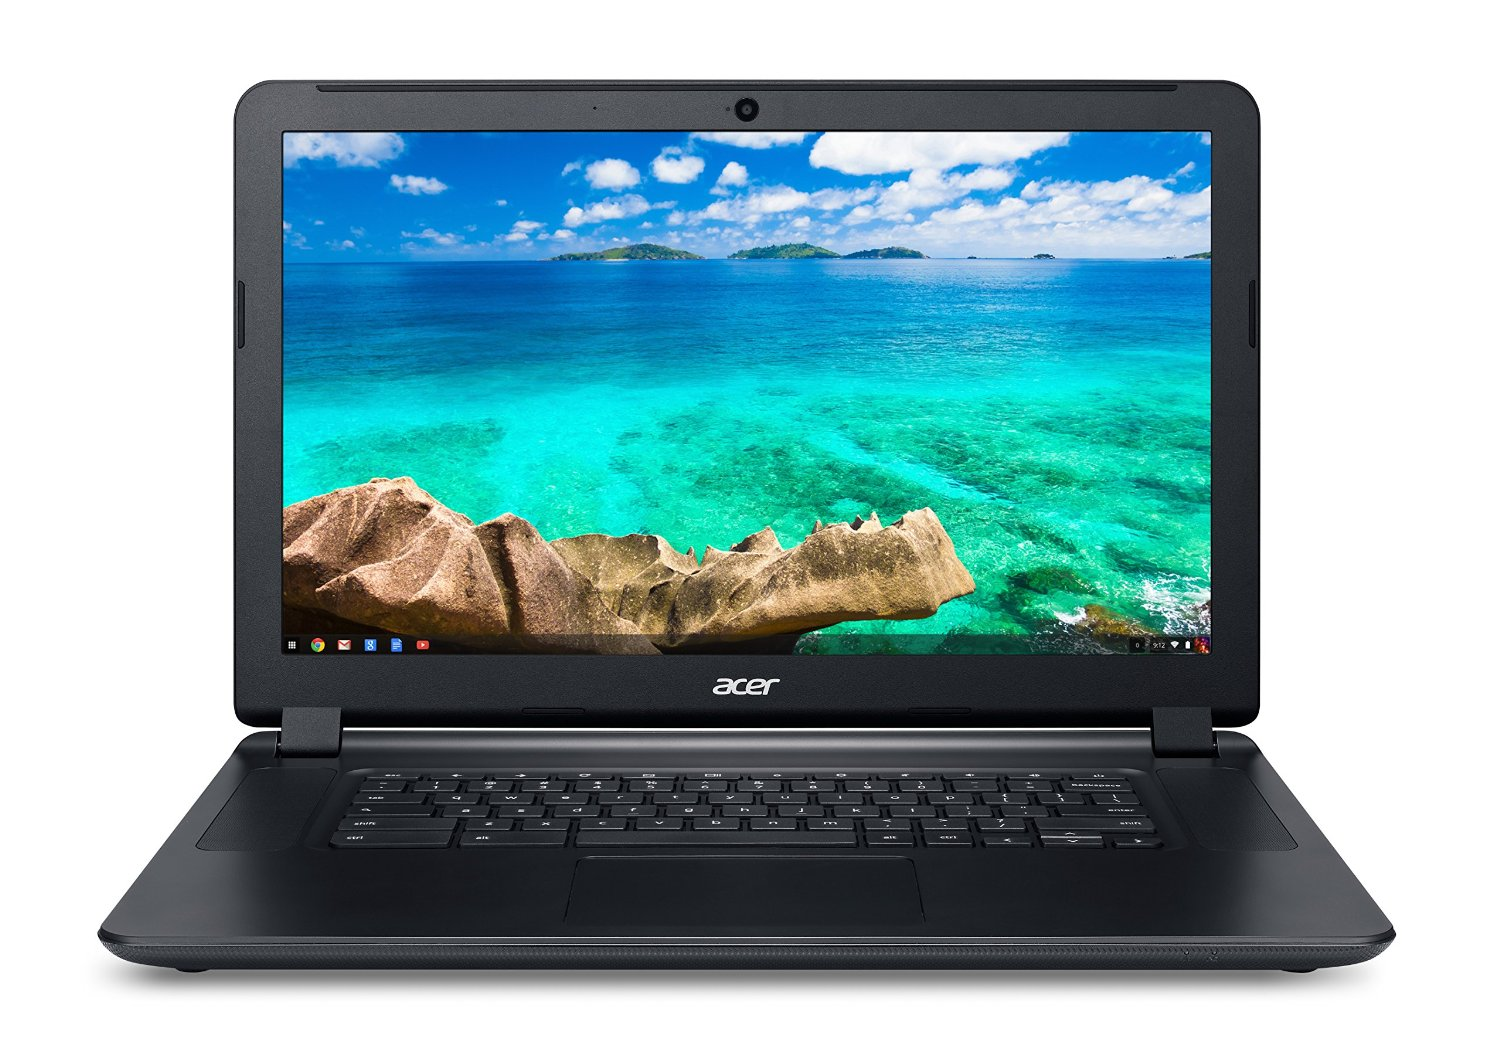 Acer Chromebook C910 354y Notebook Review Notebookcheck